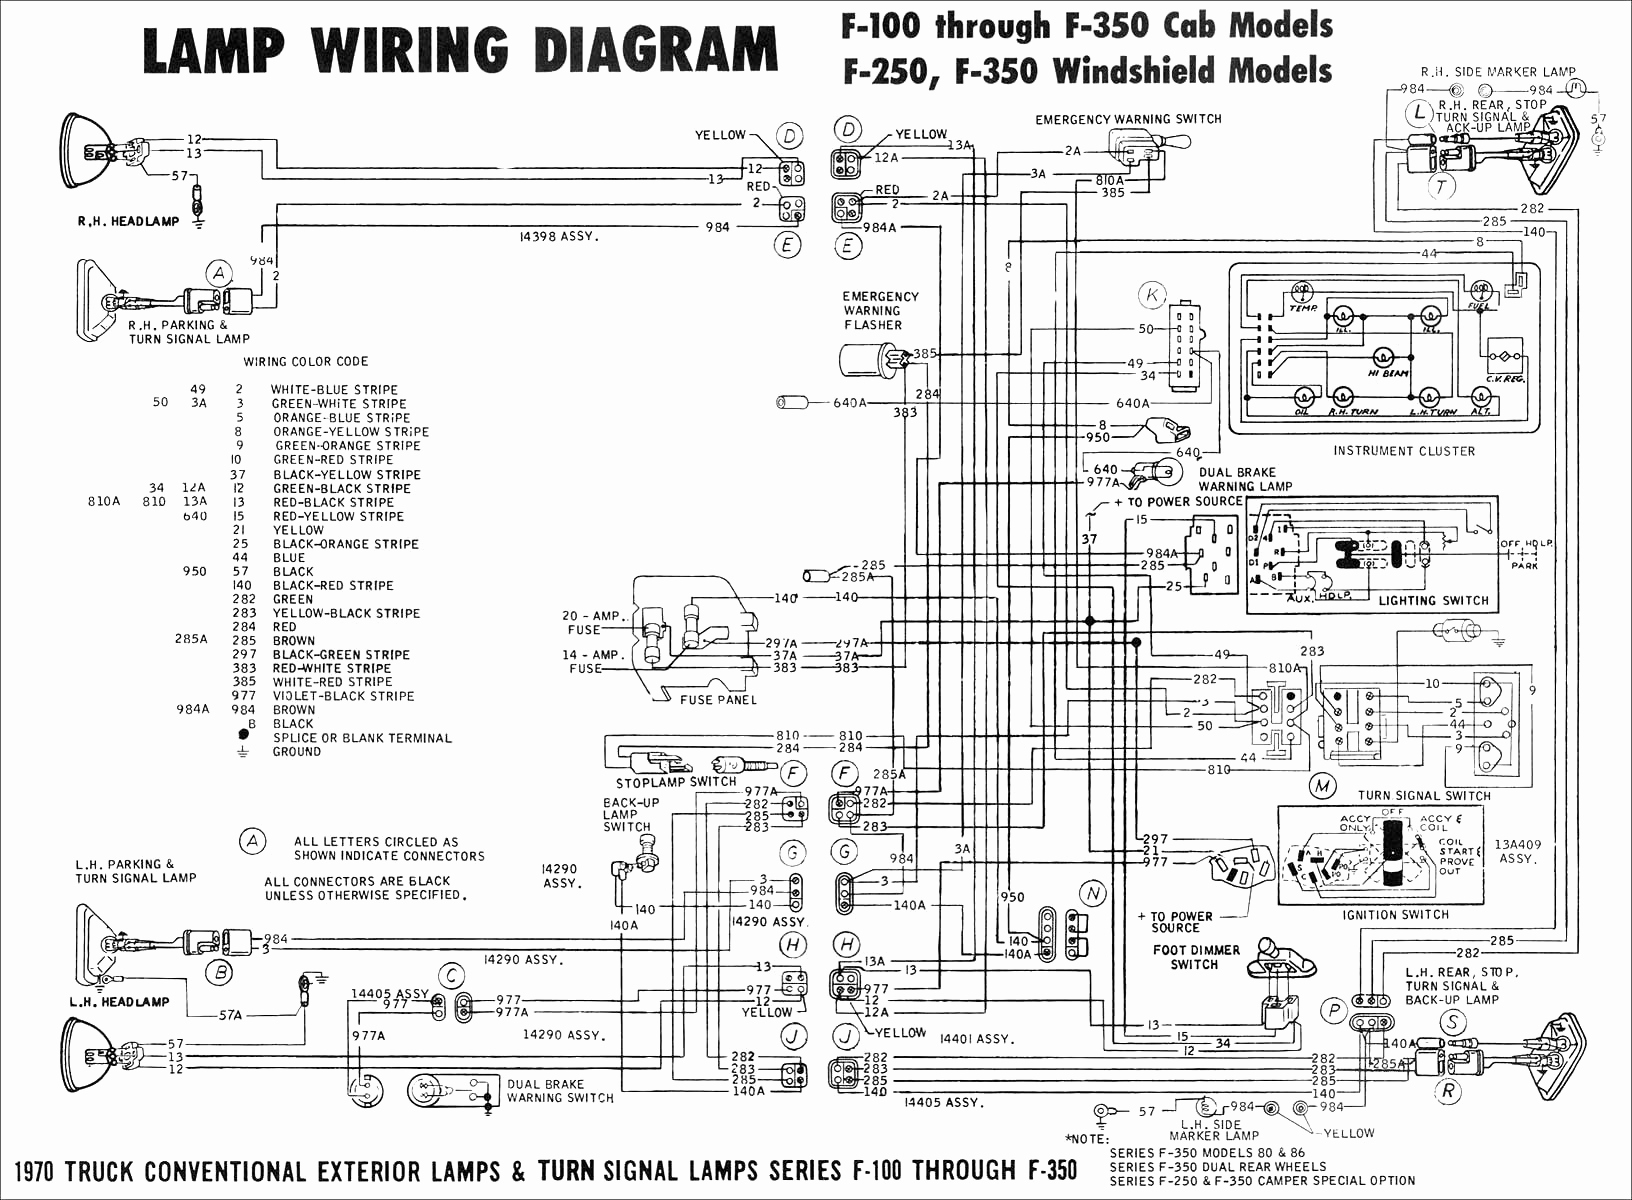 true t 49f wiring diagram Collection-Full Size of Wiring Diagram True Freezer T 49f Wiring Diagram New 2001 Ford Escape 10-m